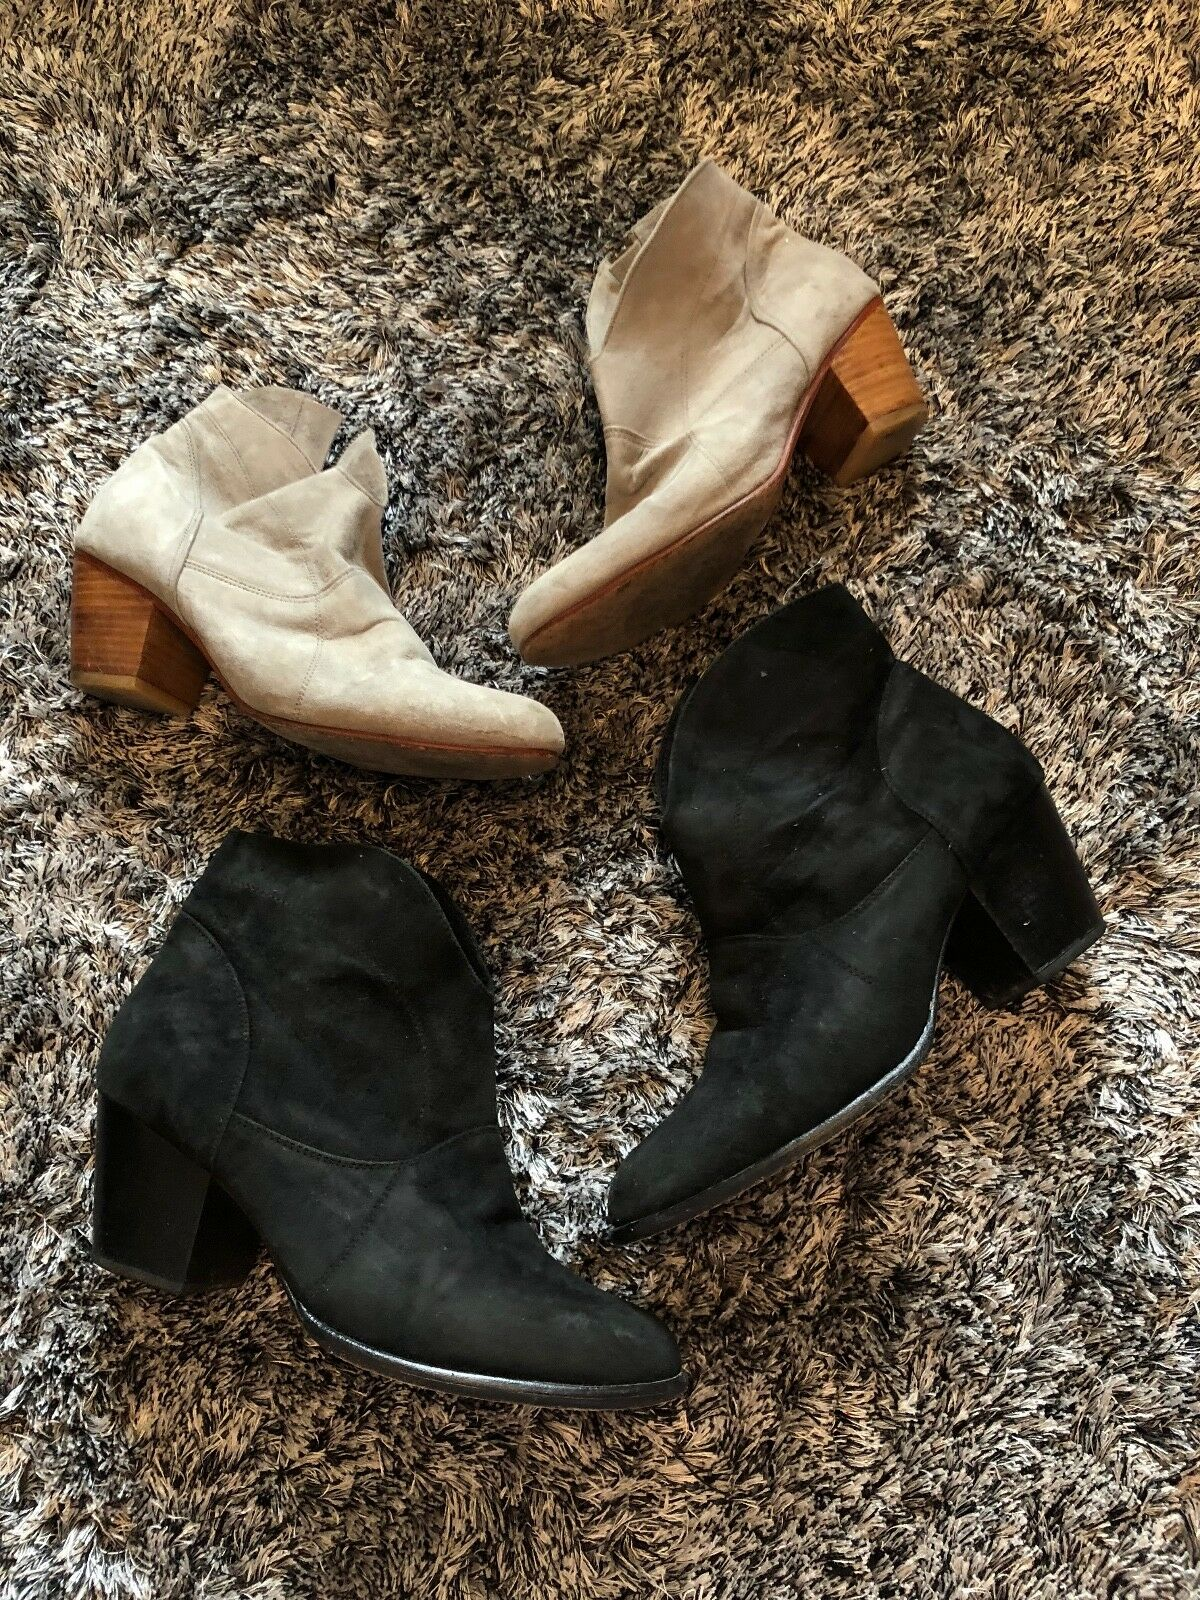 WORN - 2NDSKIN SUEDE LEATHER BOOTS - BOUTIQUE - 7 40